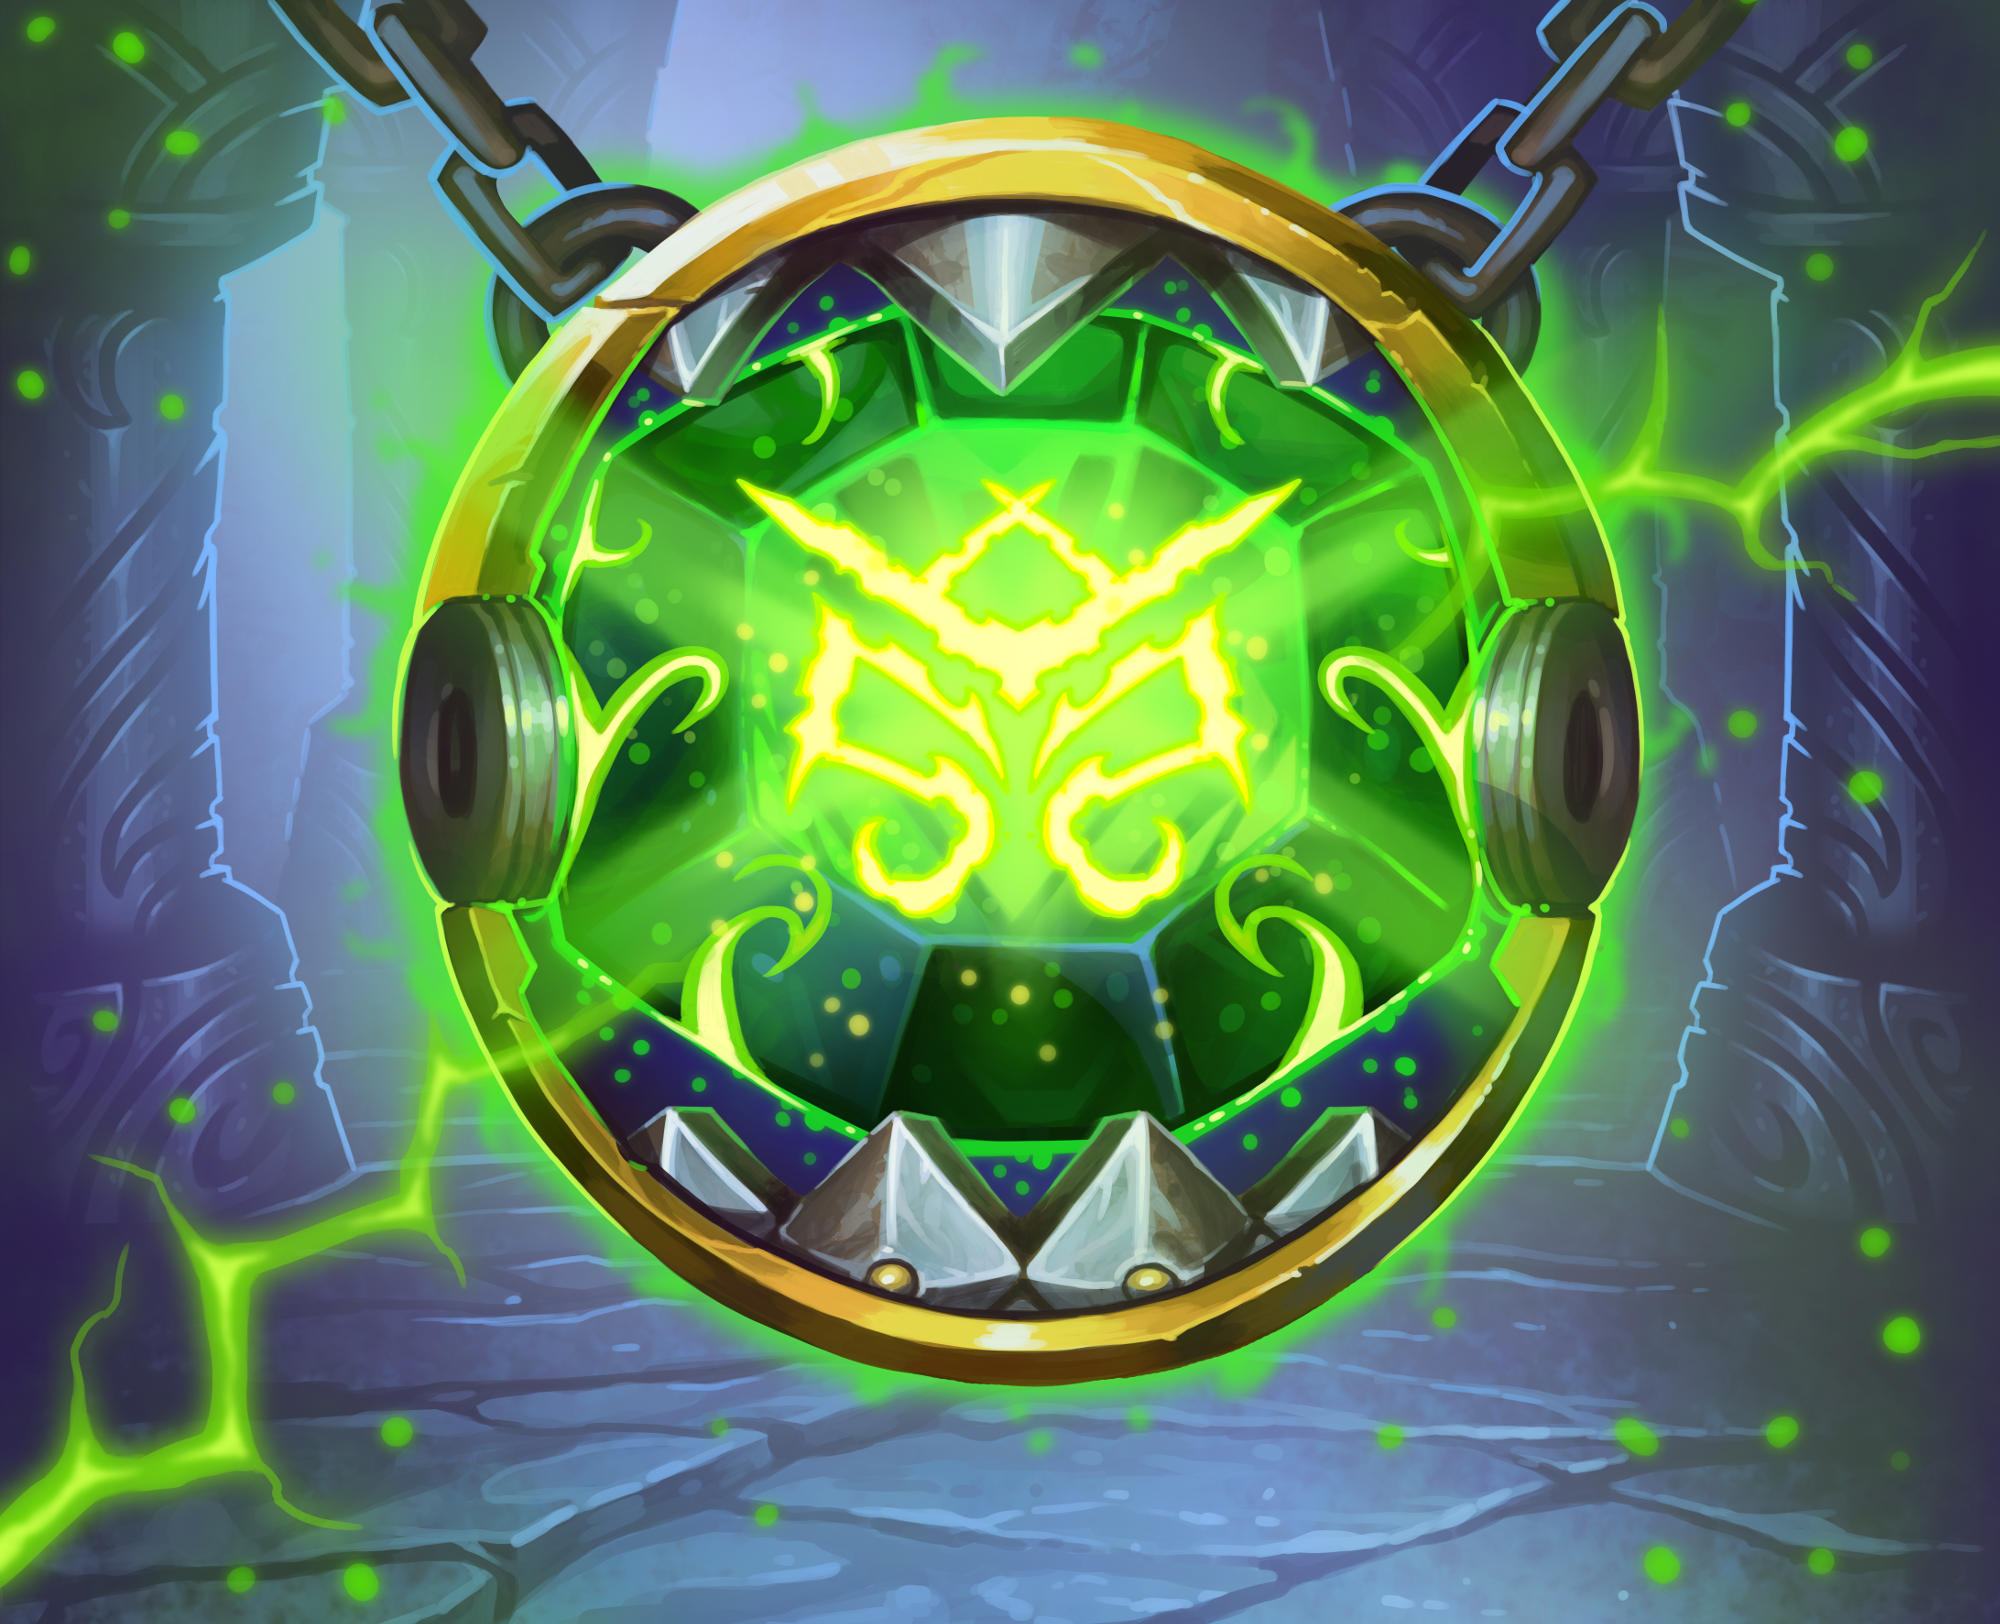 Artwork for the Hearthstone card Greater Emerald Spellstone